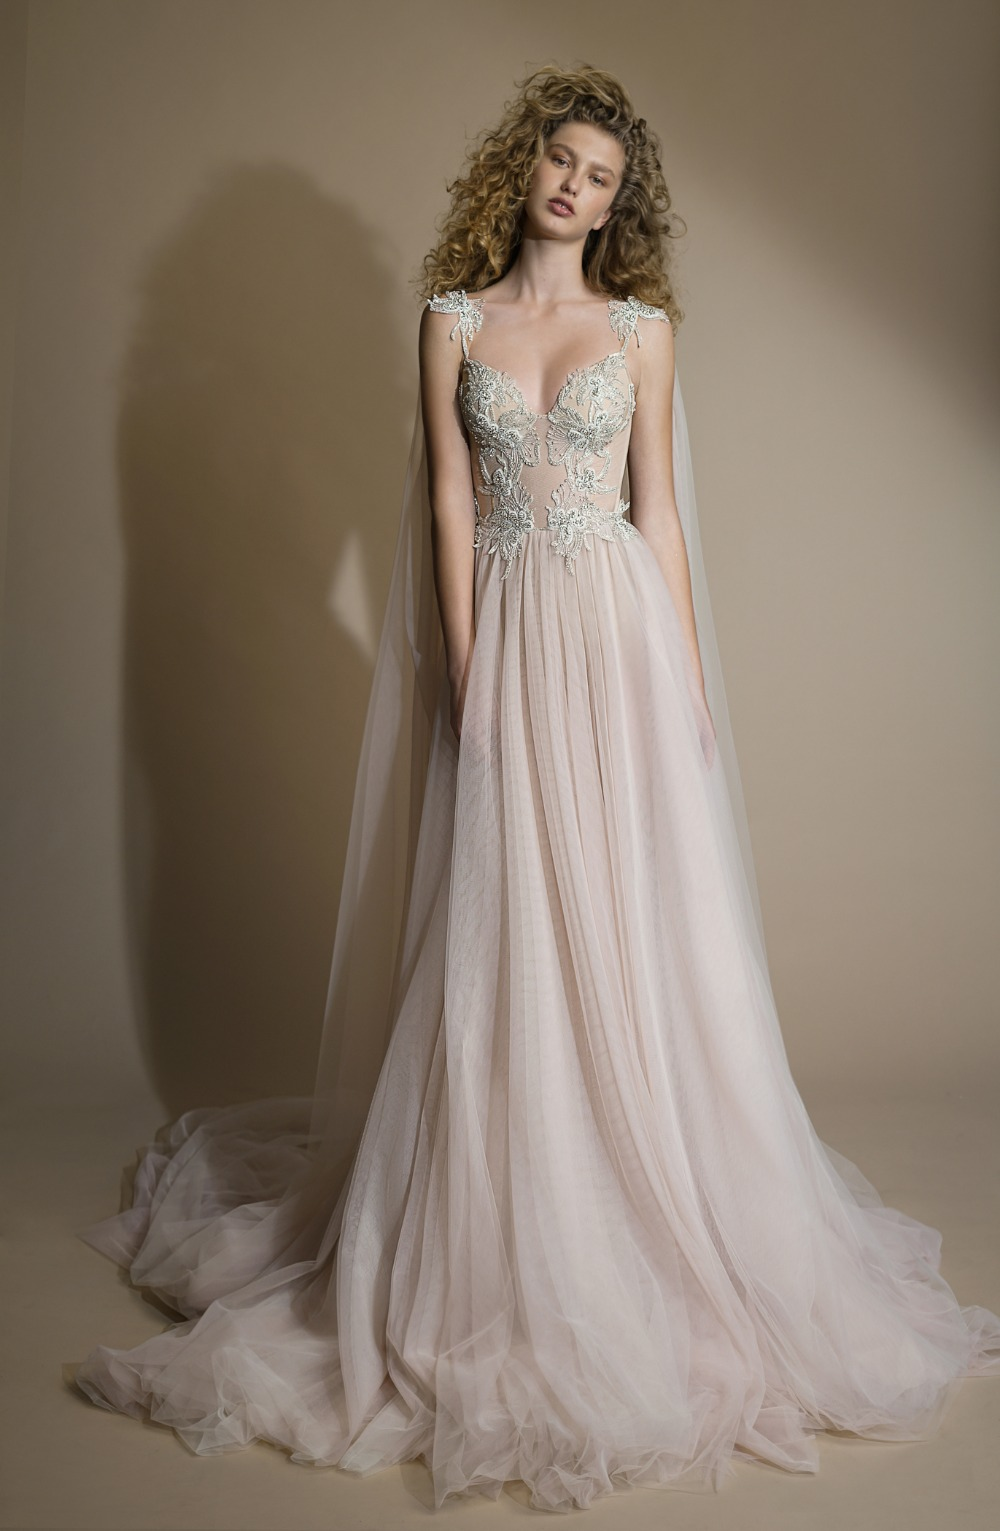 Romantic ballerina ballgown in a dusty rose color  from Galia Lahav